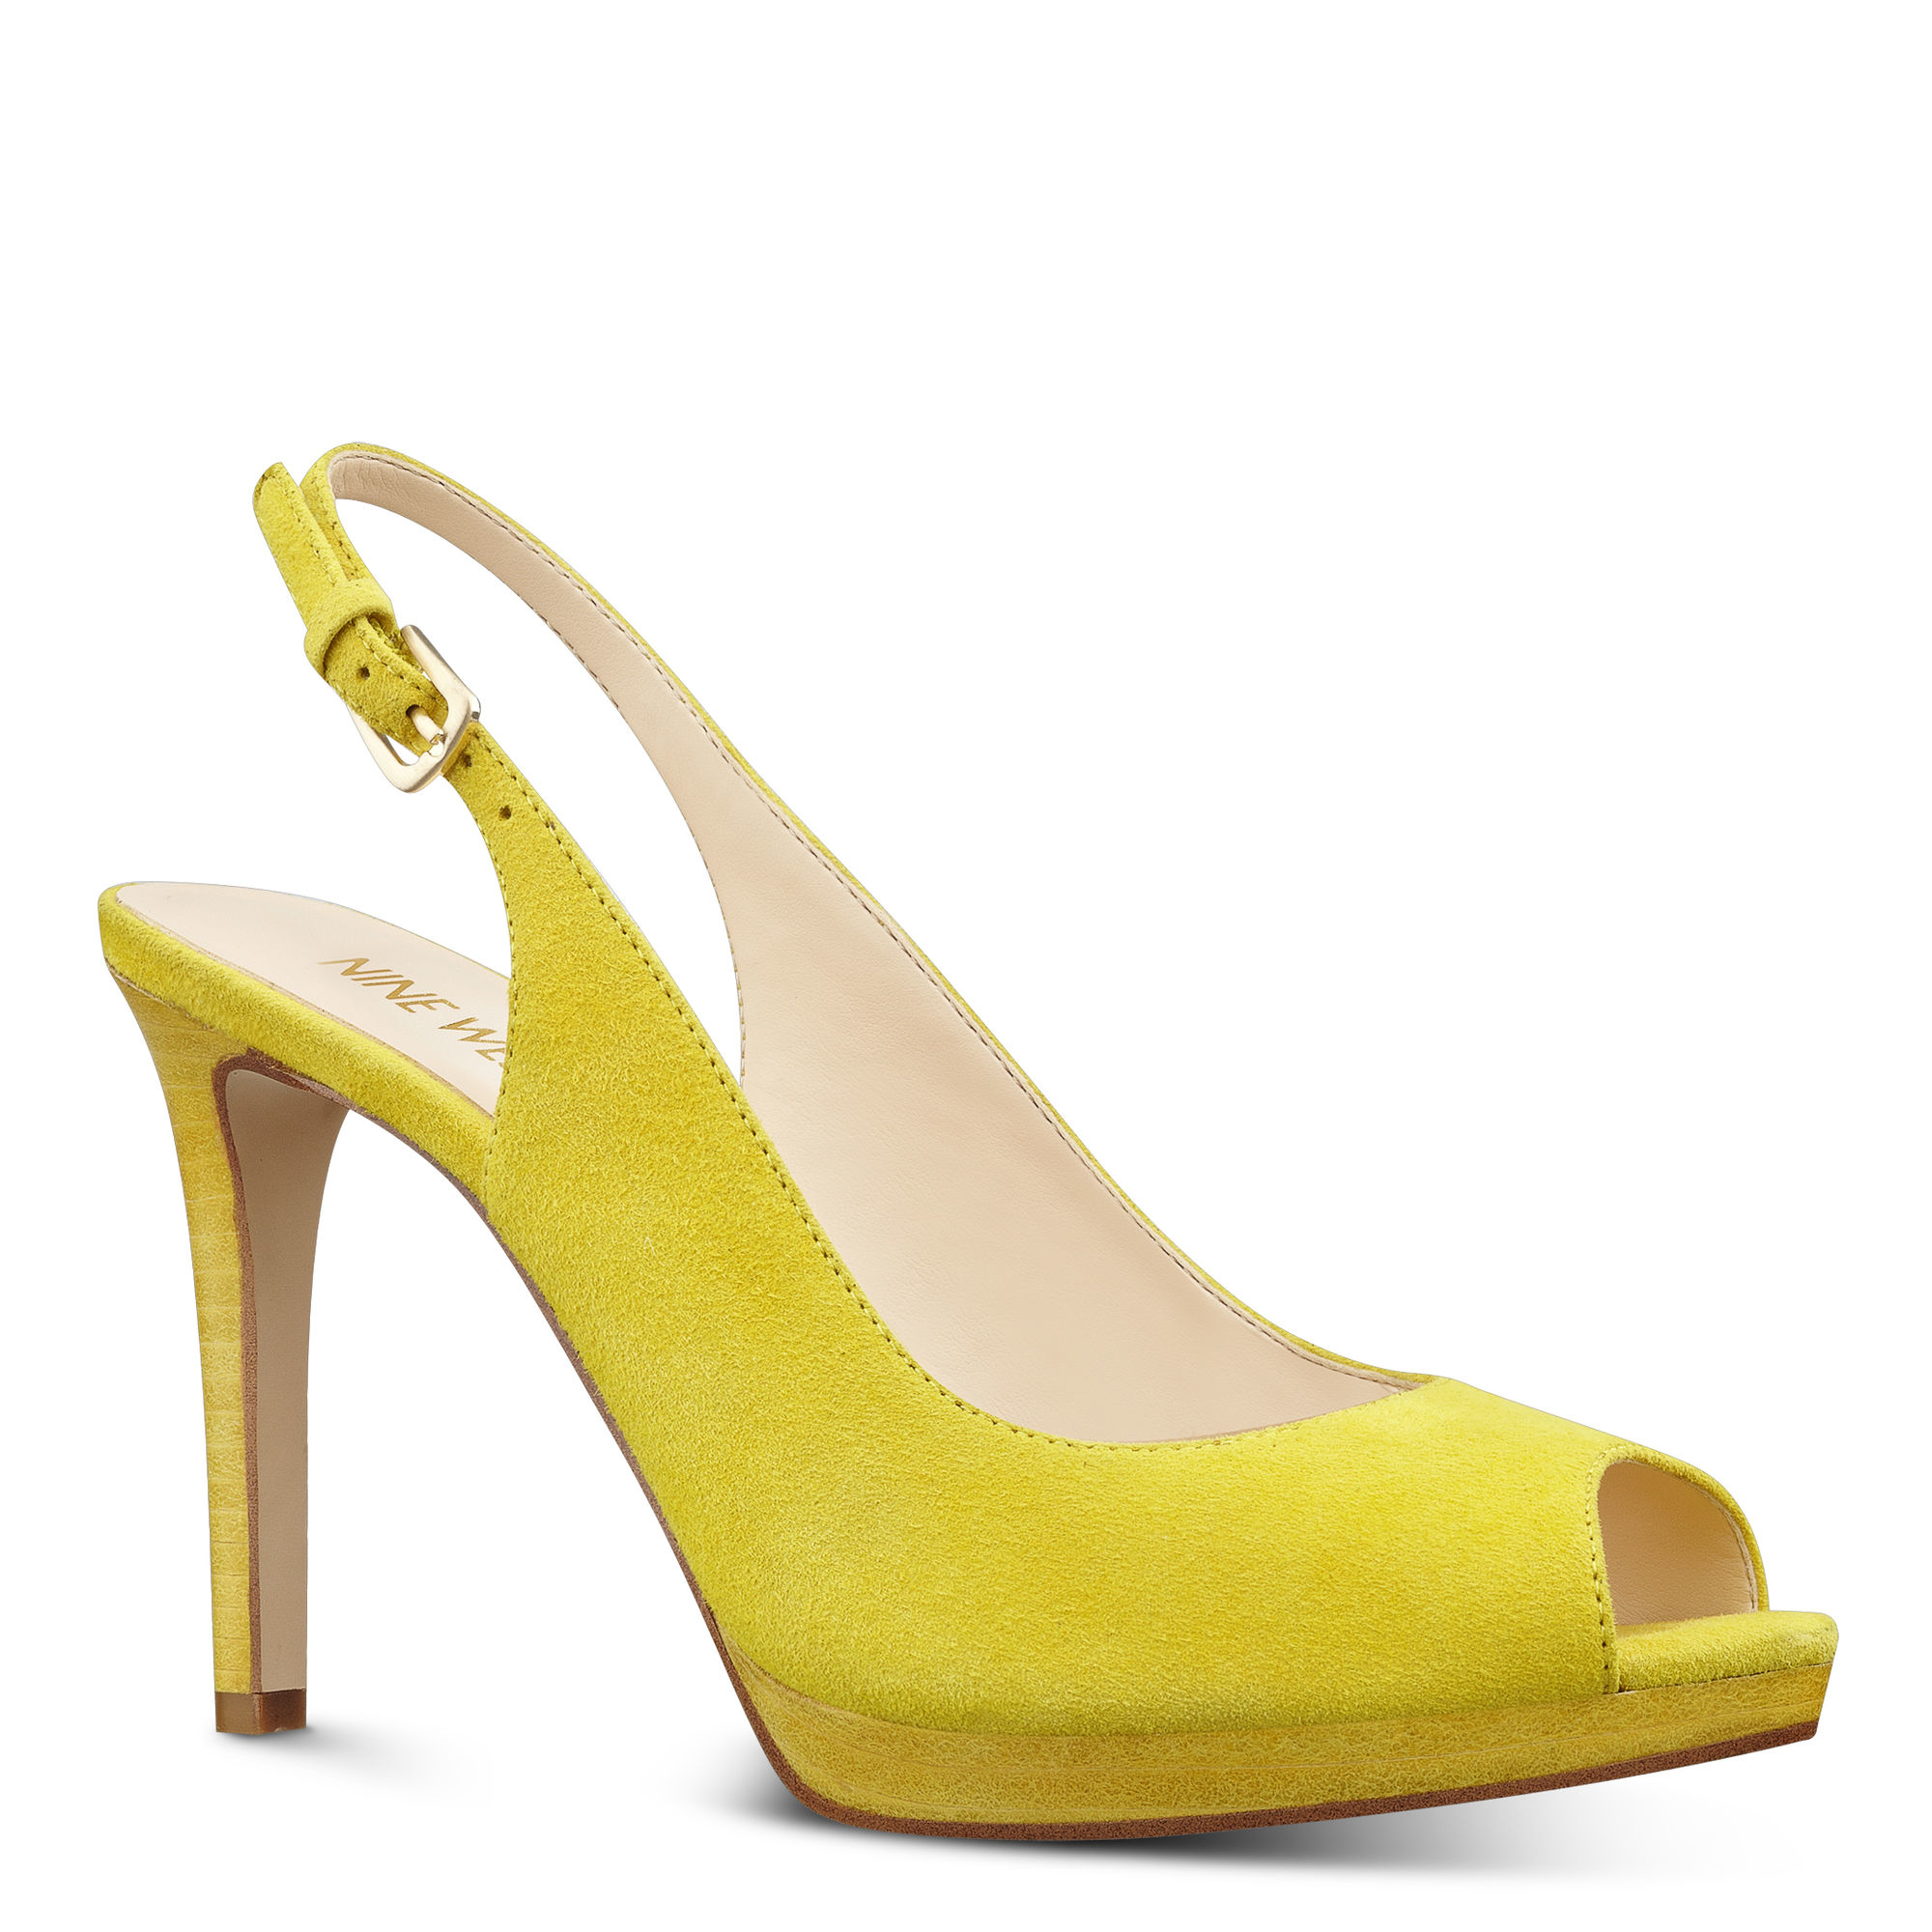 5052e5e558b088 Lyst - Nine West Emilyna Slingback Pumps in Yellow